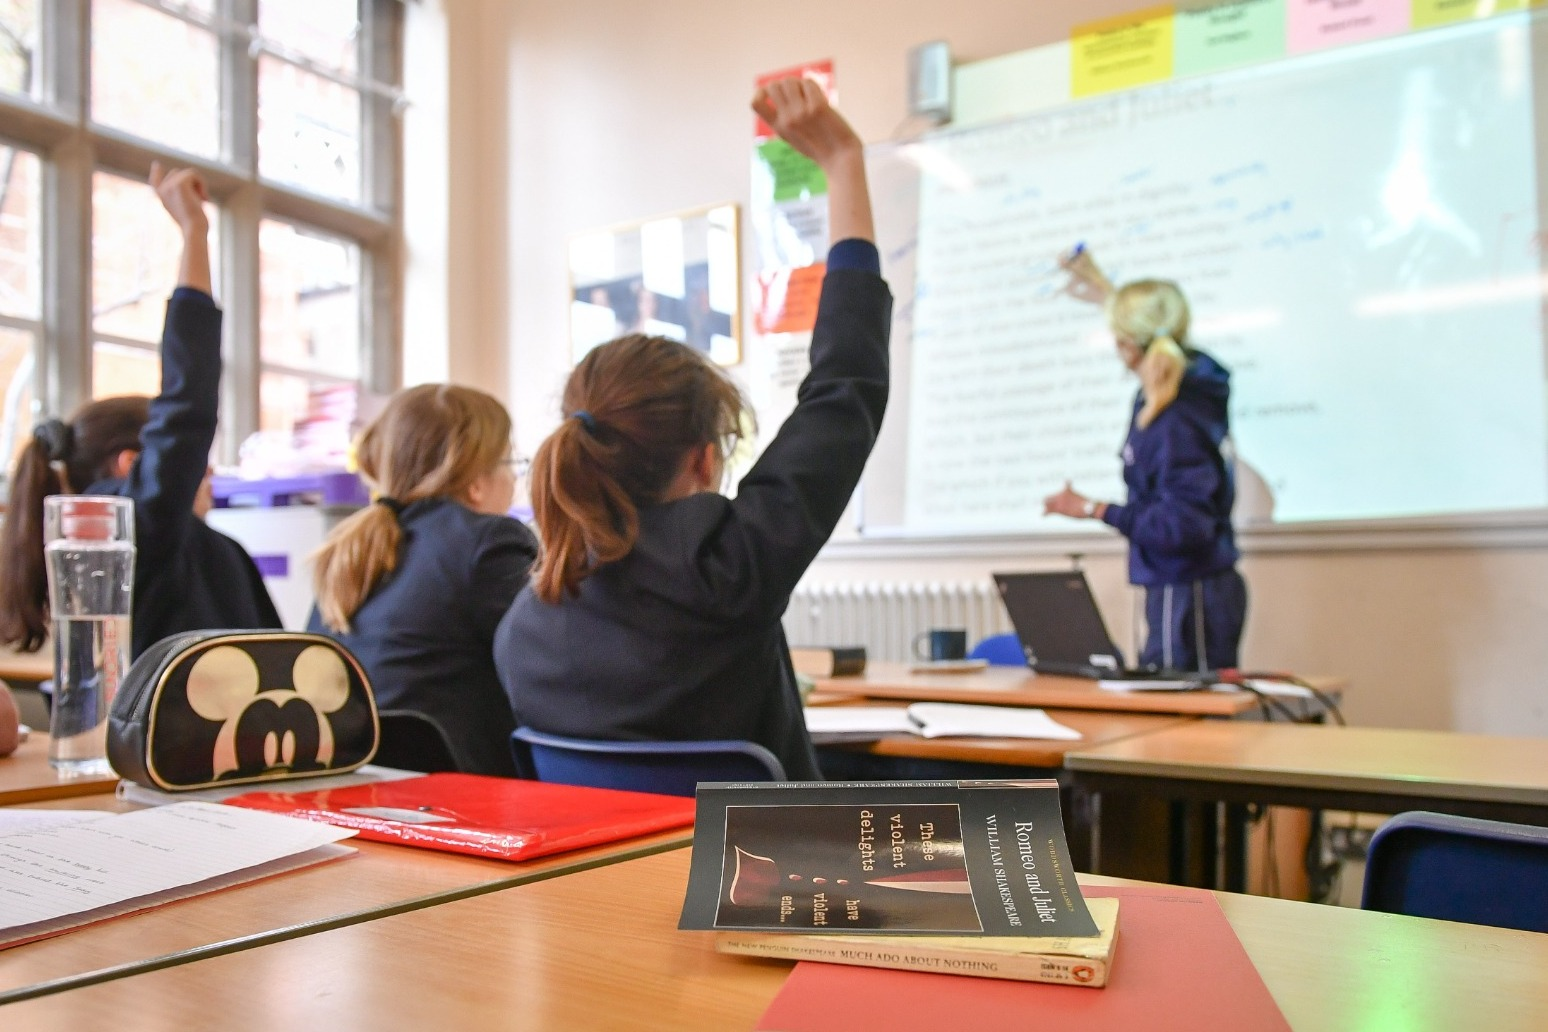 Extremist views widespread in England's classrooms, say teachers